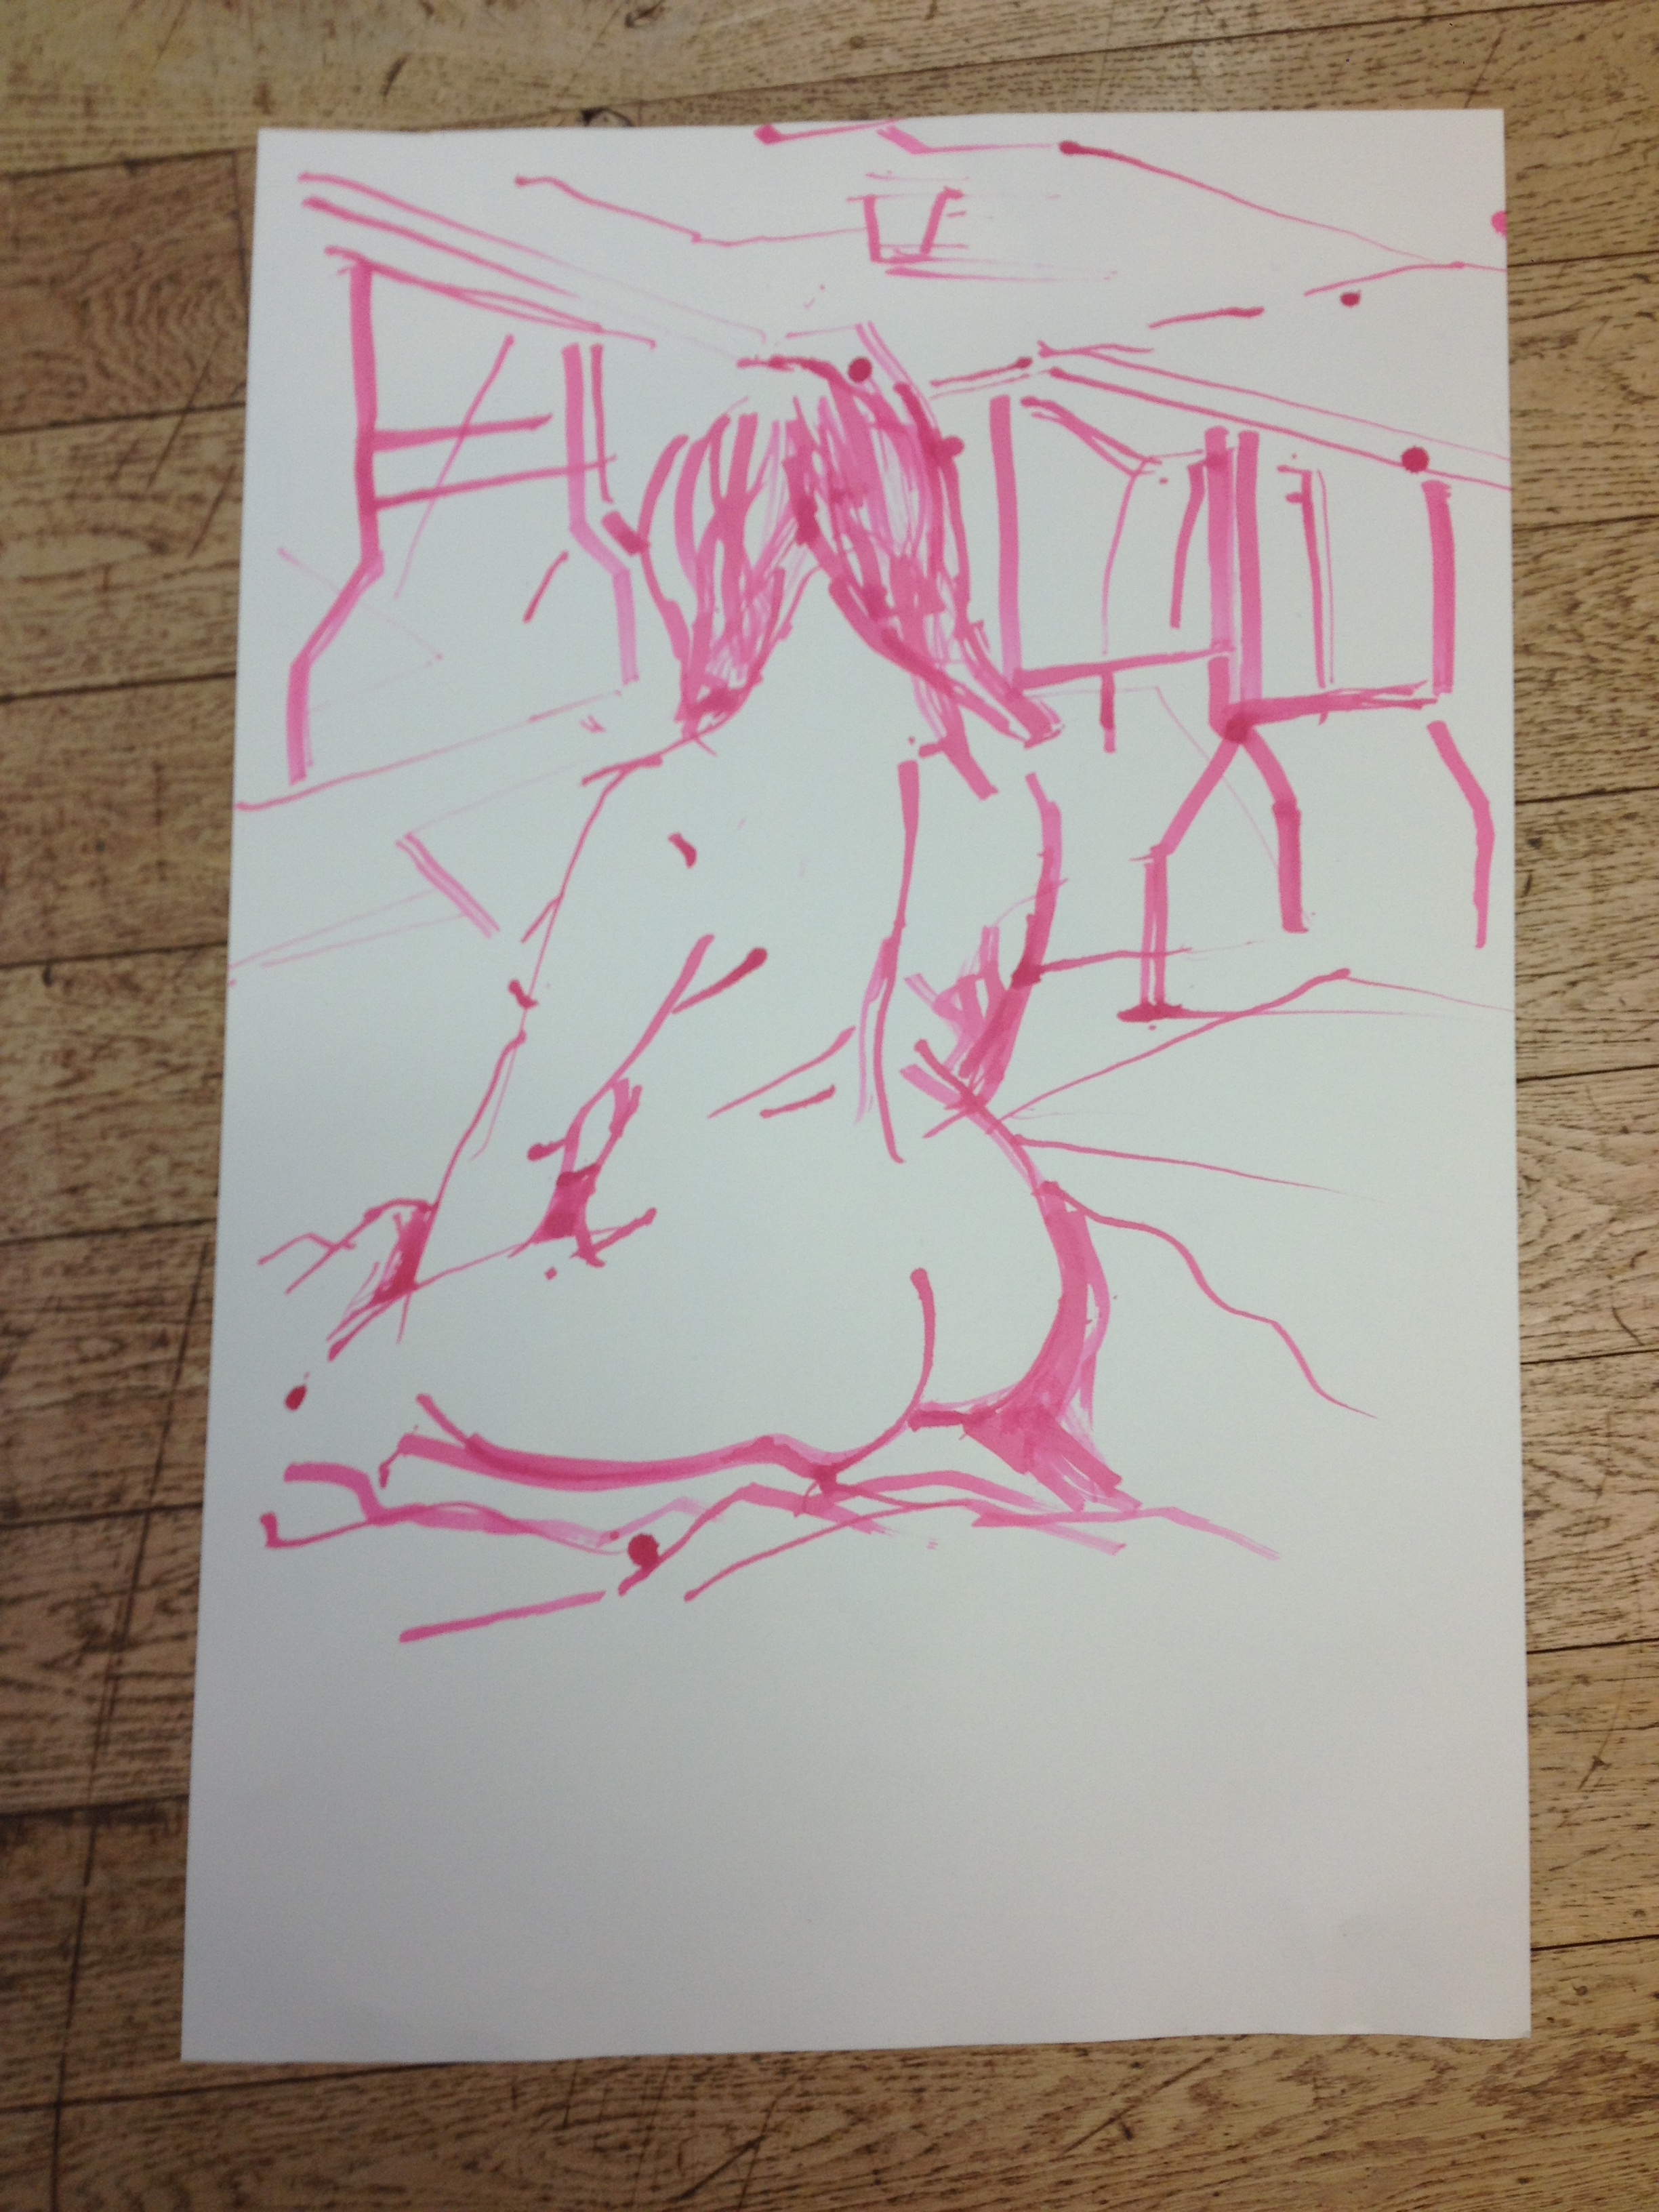 Possible contender for best butt drawing